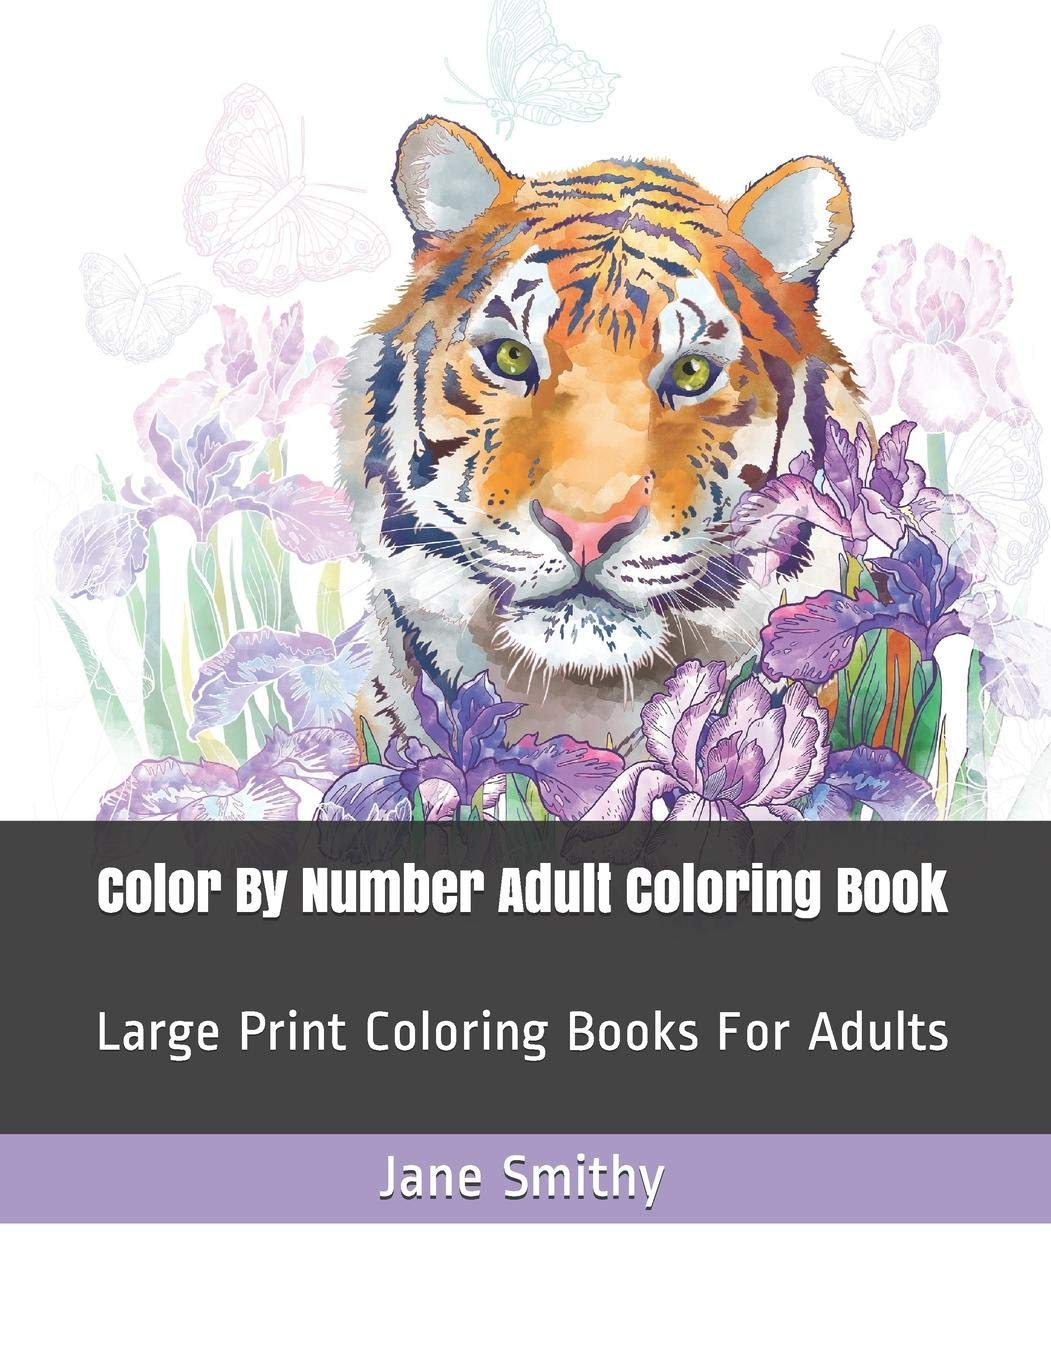 Amazon Com Color By Number Adult Coloring Book Large Print Coloring Books For Adults Adult Color By Numbers 9781079438284 Smithy Jane Books